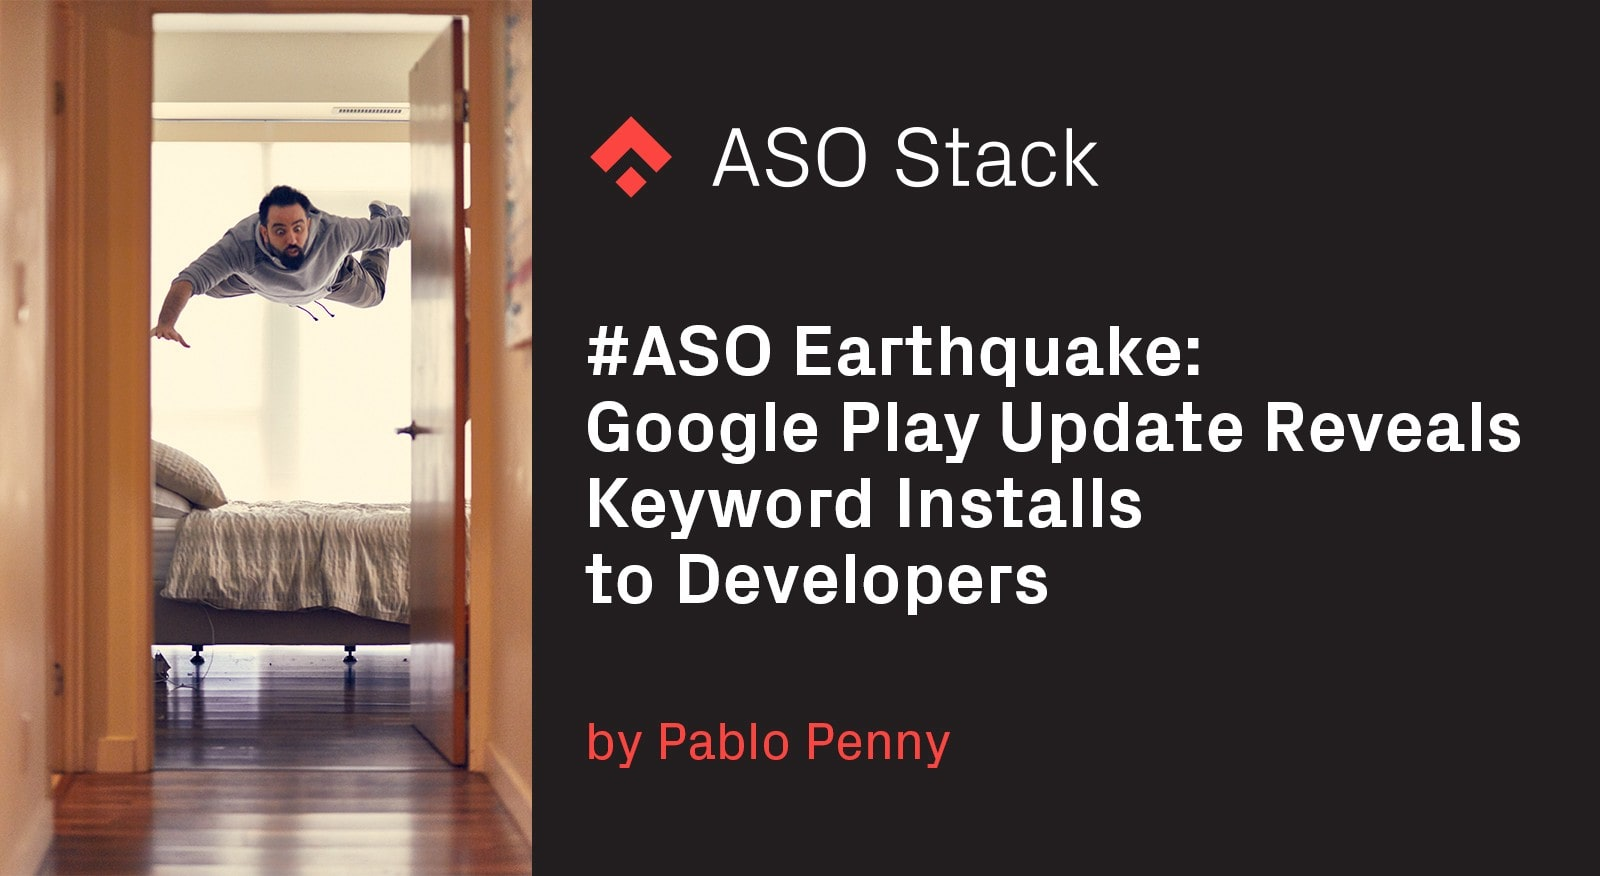 #ASO Earthquake- Google Play Update Reveals Keyword Installs to Developers